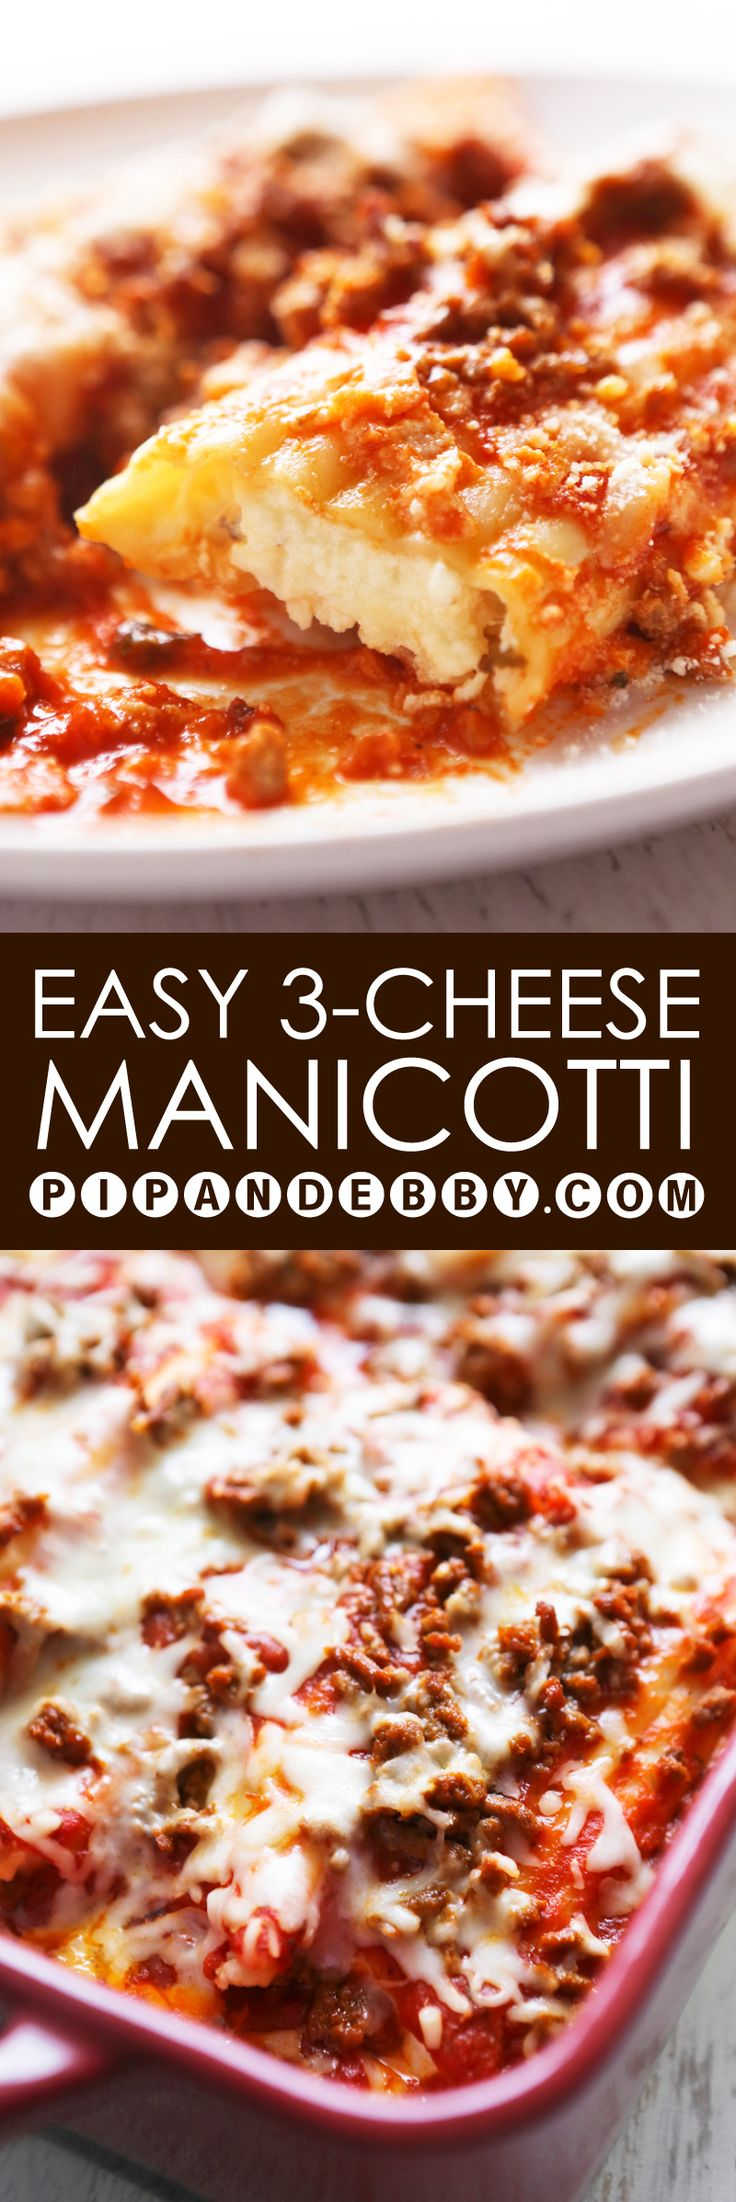 Easy Three-Cheese Manicotti | Three gooey cheeses in this EASY pasta dinner!